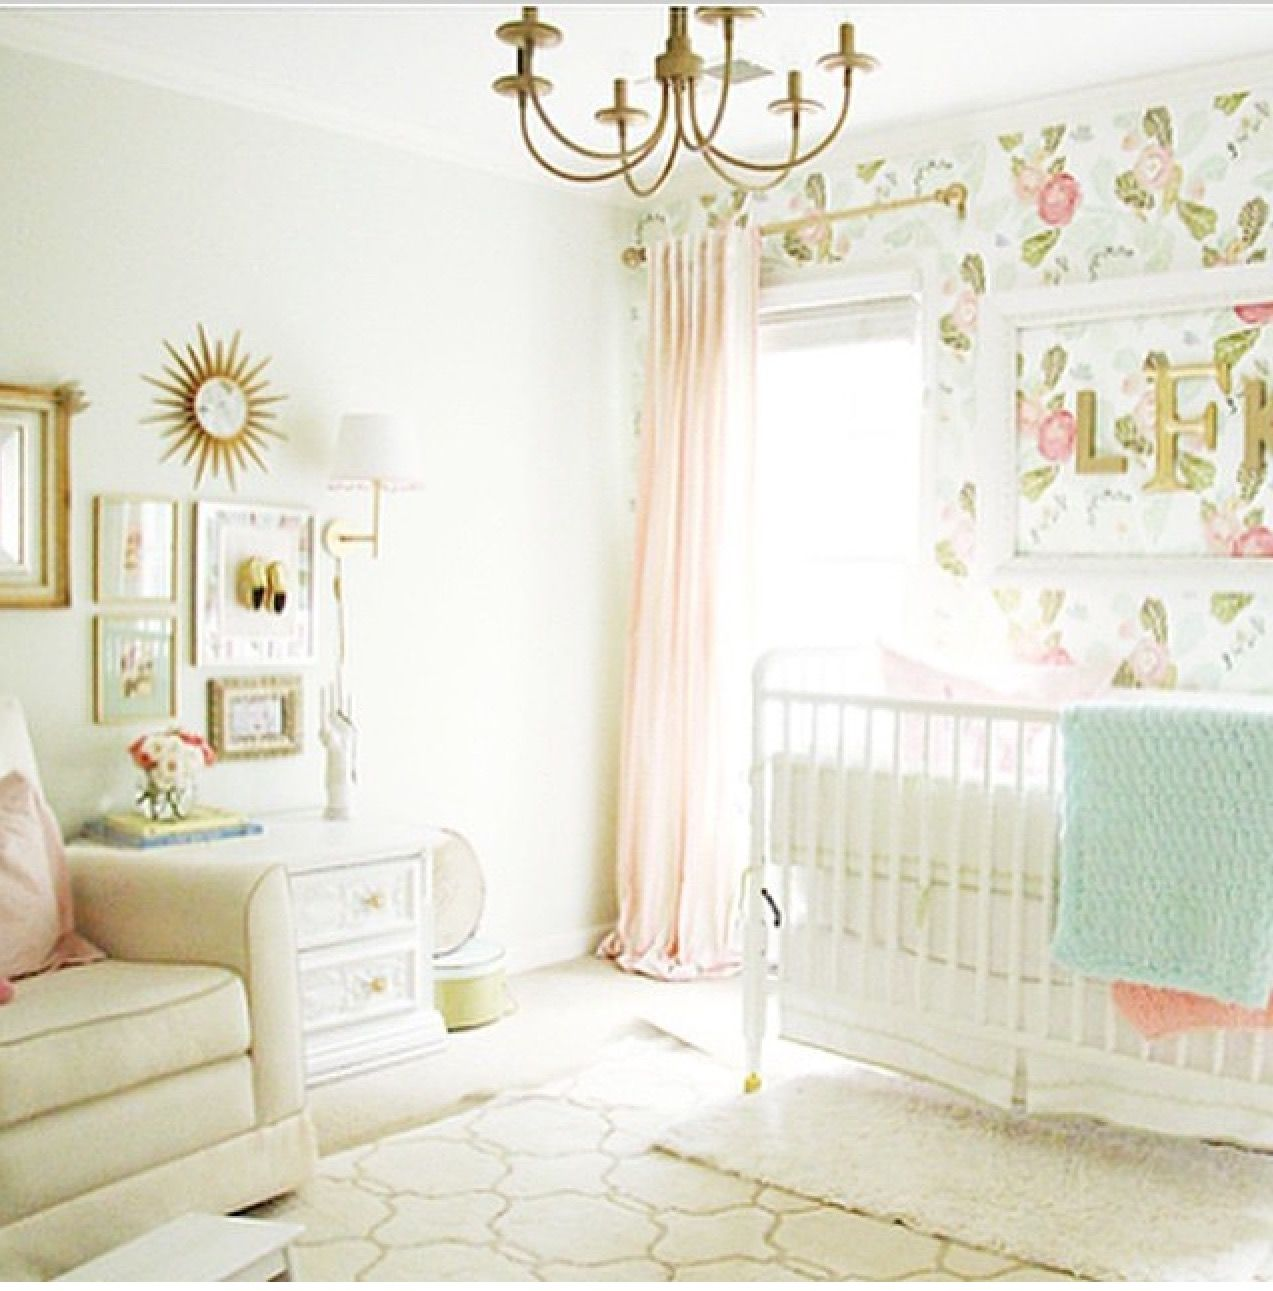 Pin by Tammi Baker on Children's Spaces Girl room, Baby